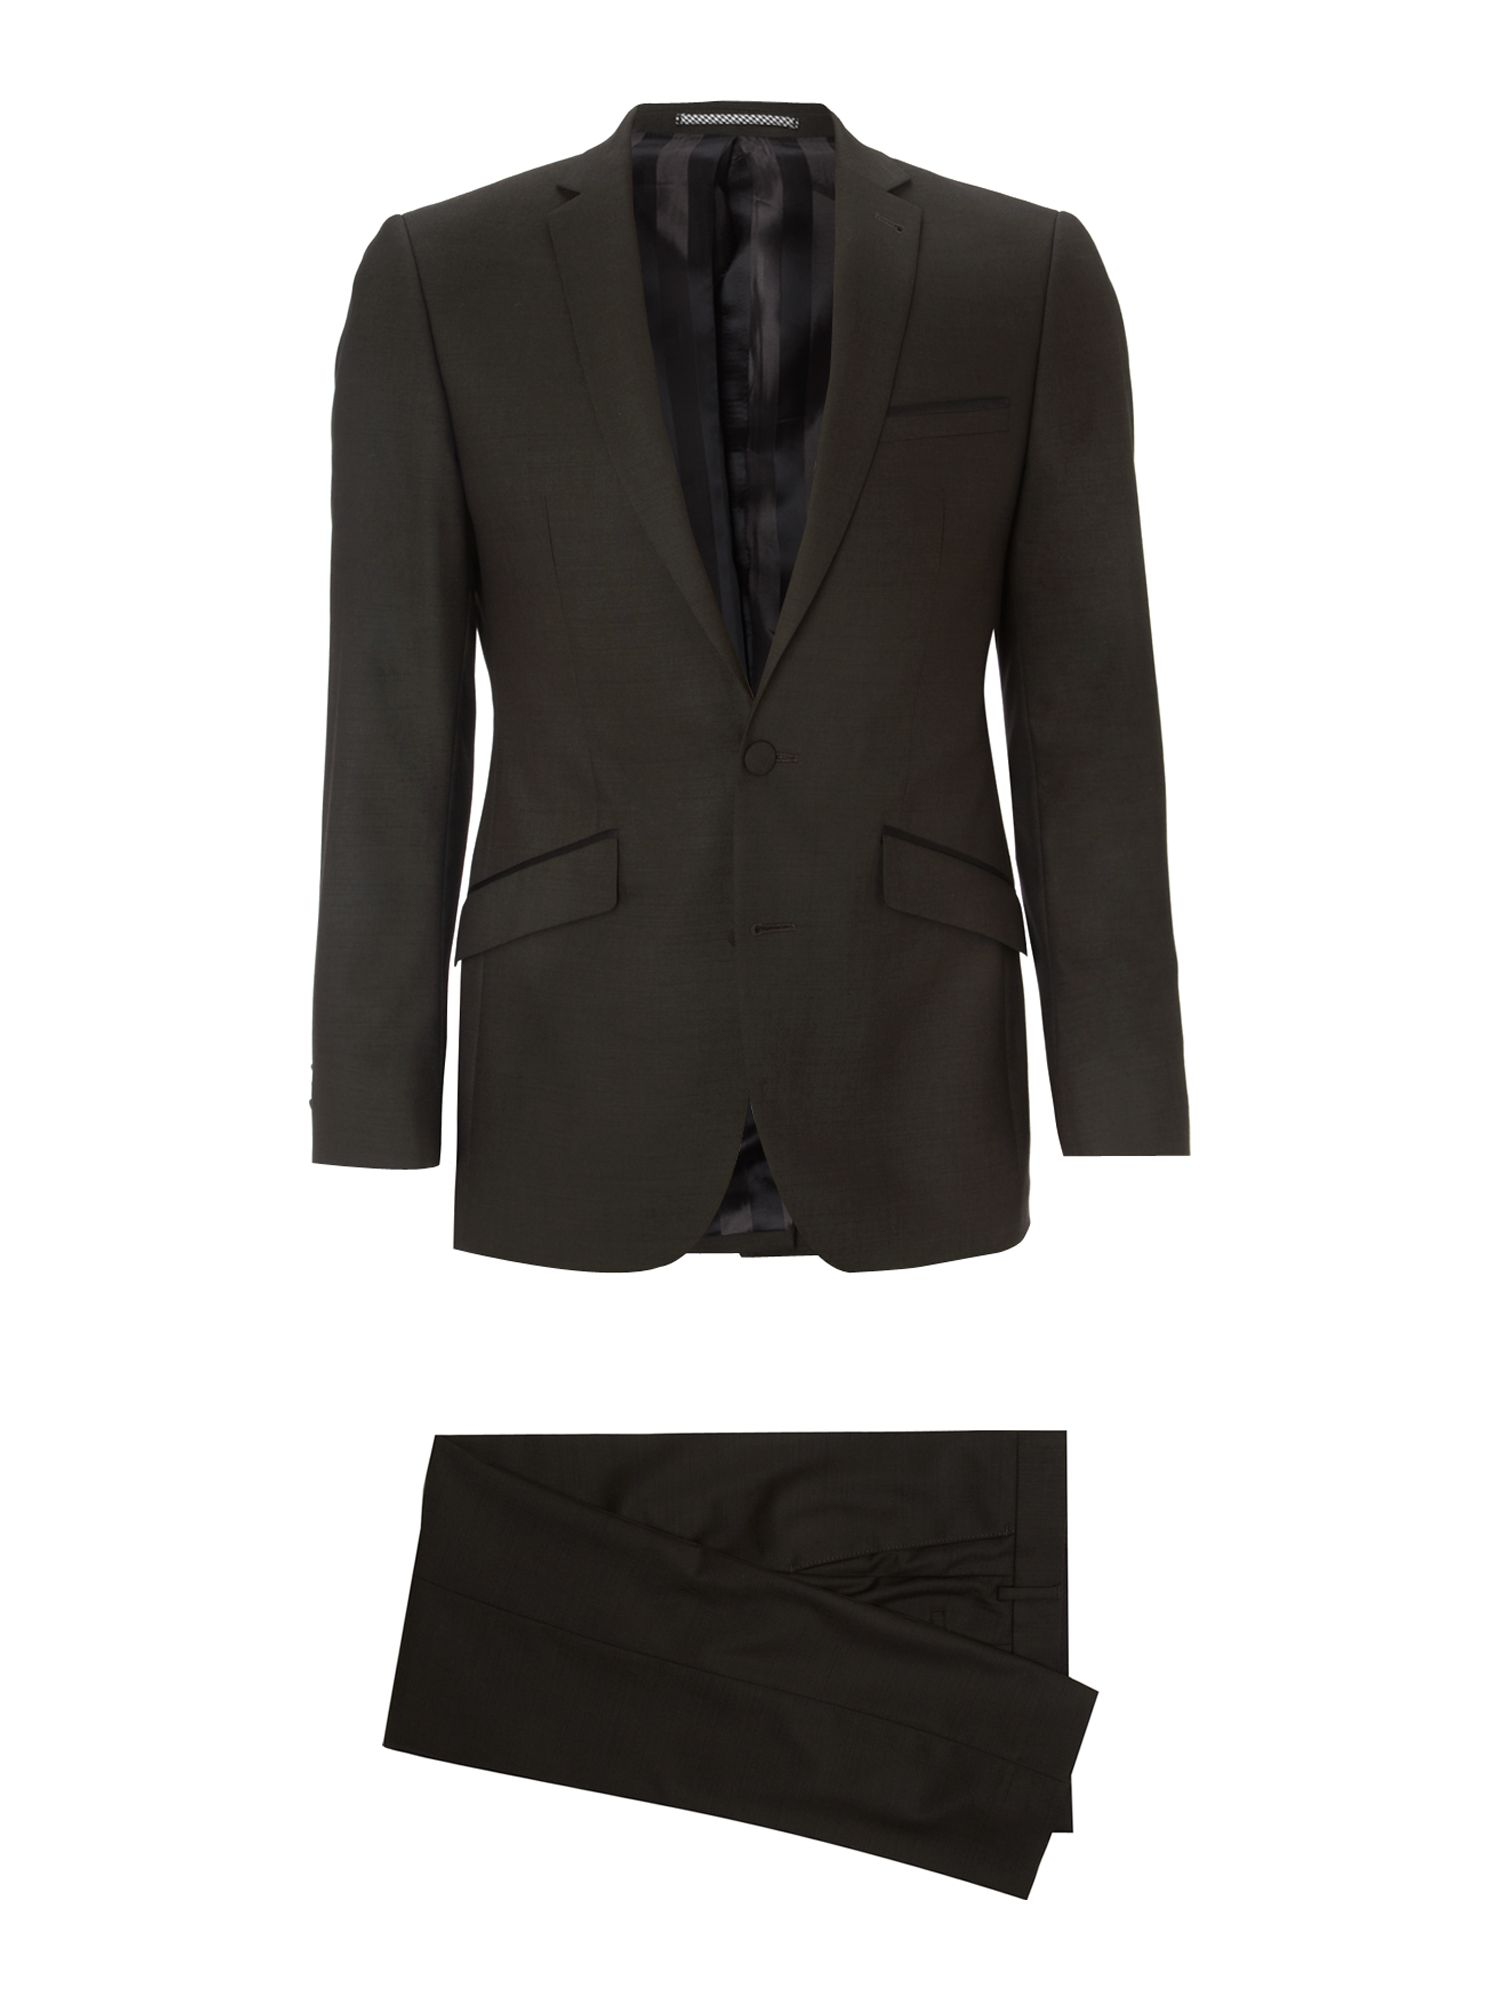 Tonic satin trim suit